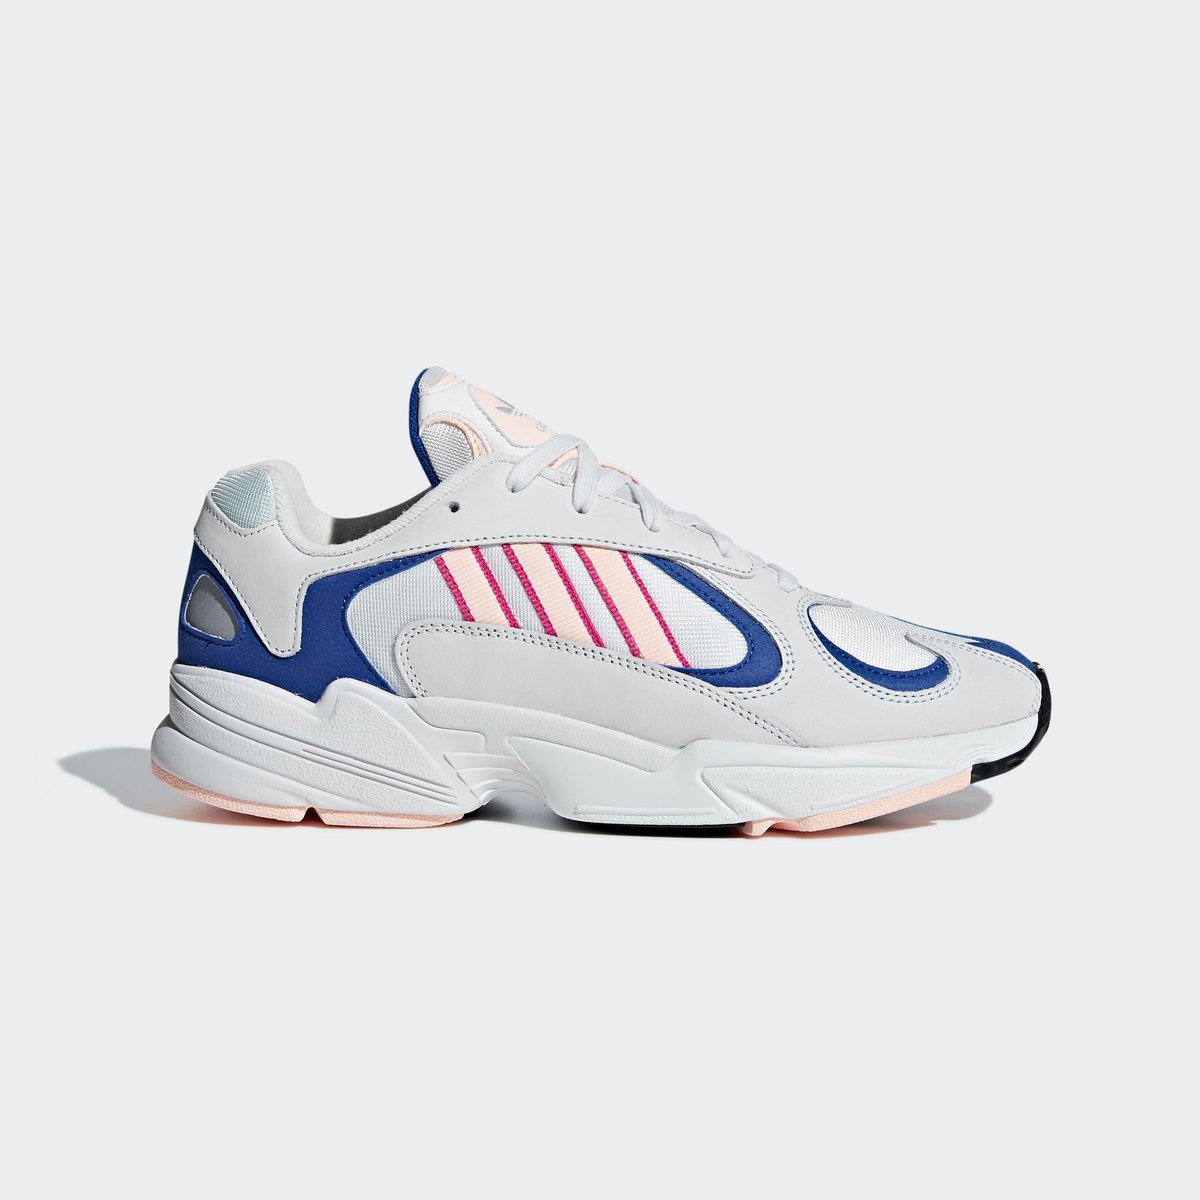 finest selection f7886 96137 Now available on adidas US. adidas Yung 1. — httpbit.ly2C9dgMT  pic.twitter.com2bMfCvZXZt. 2 replies 4 ...